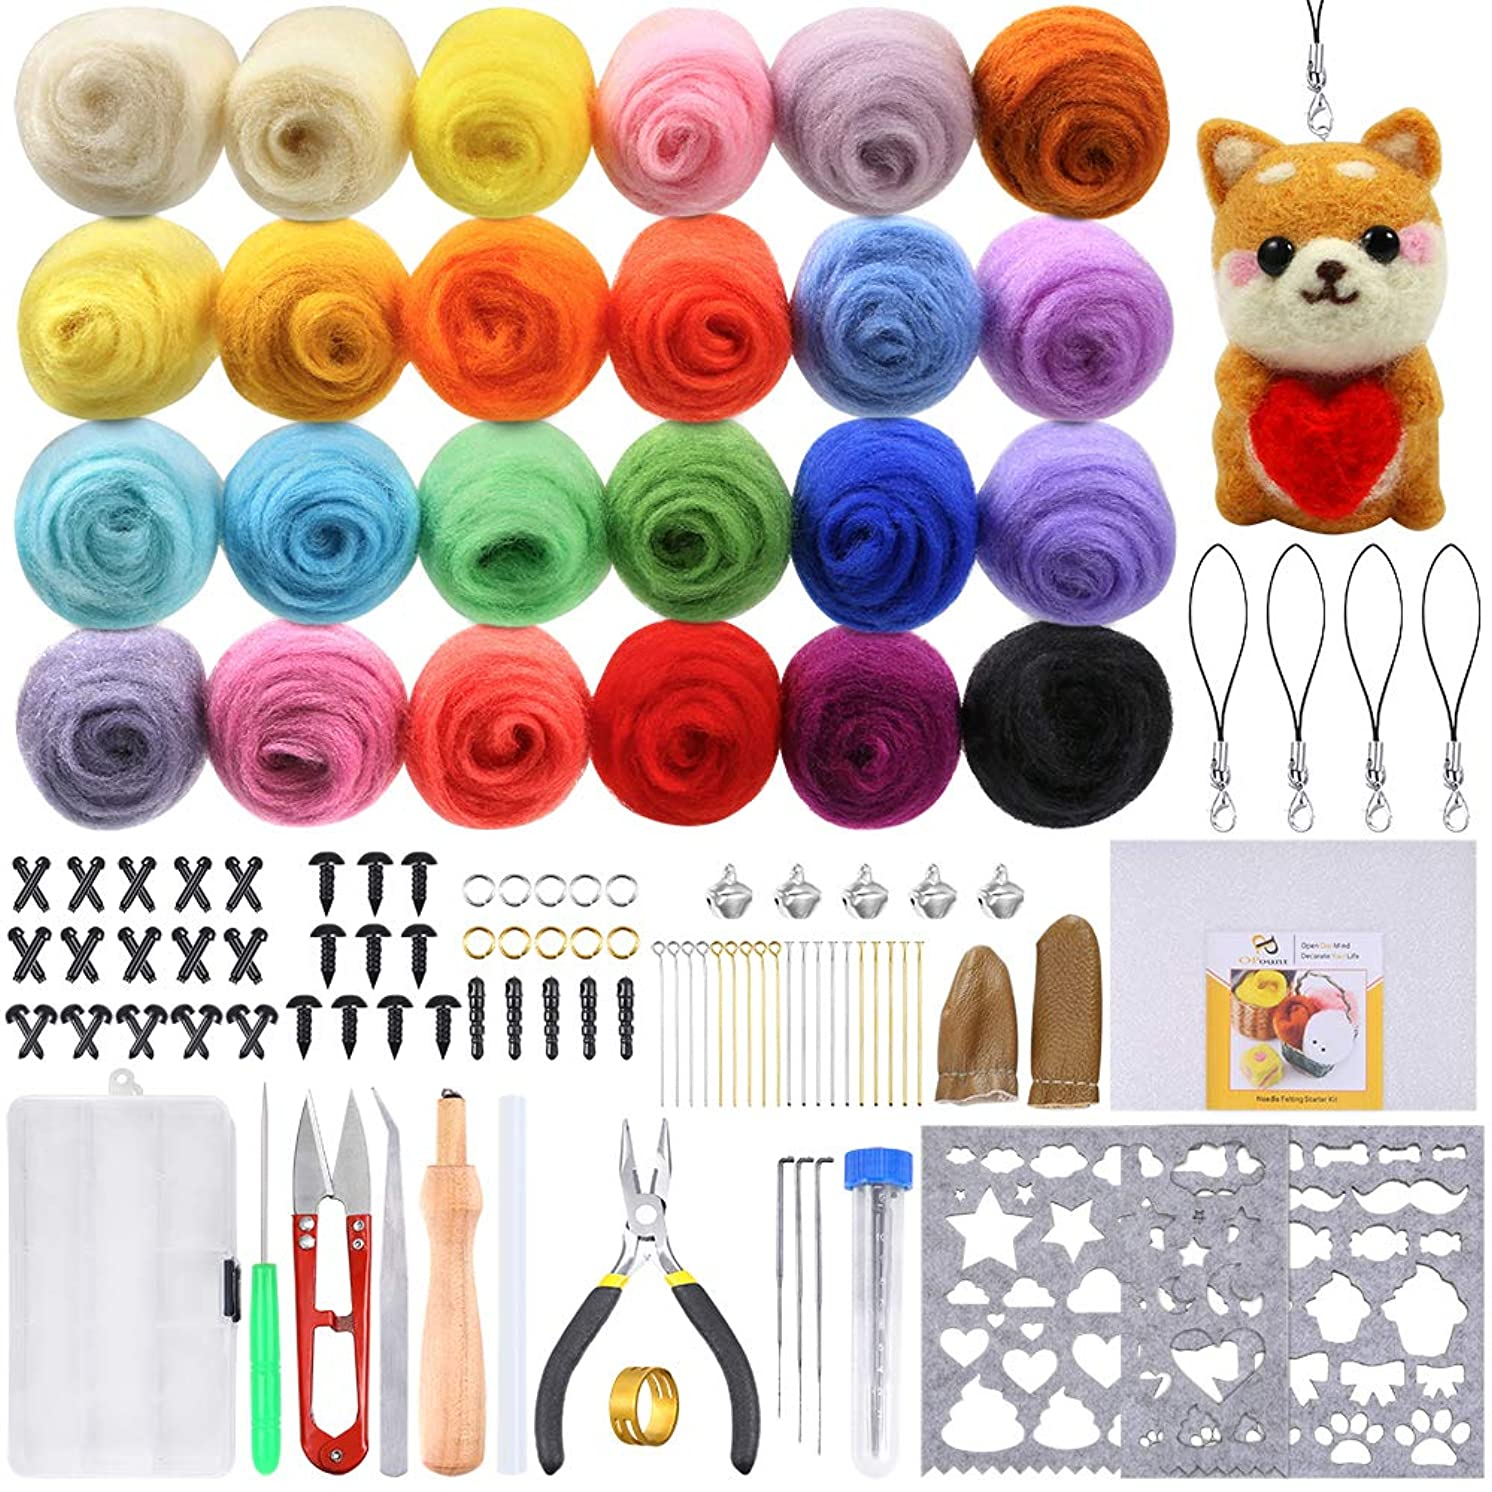 PP OPOUNT Needle Felting Starter Kit Including 24 Colors Wool Roving Fibre Yarn, 25 Pieces Wool Felt Tools and Instructions for DIY Needle Felting